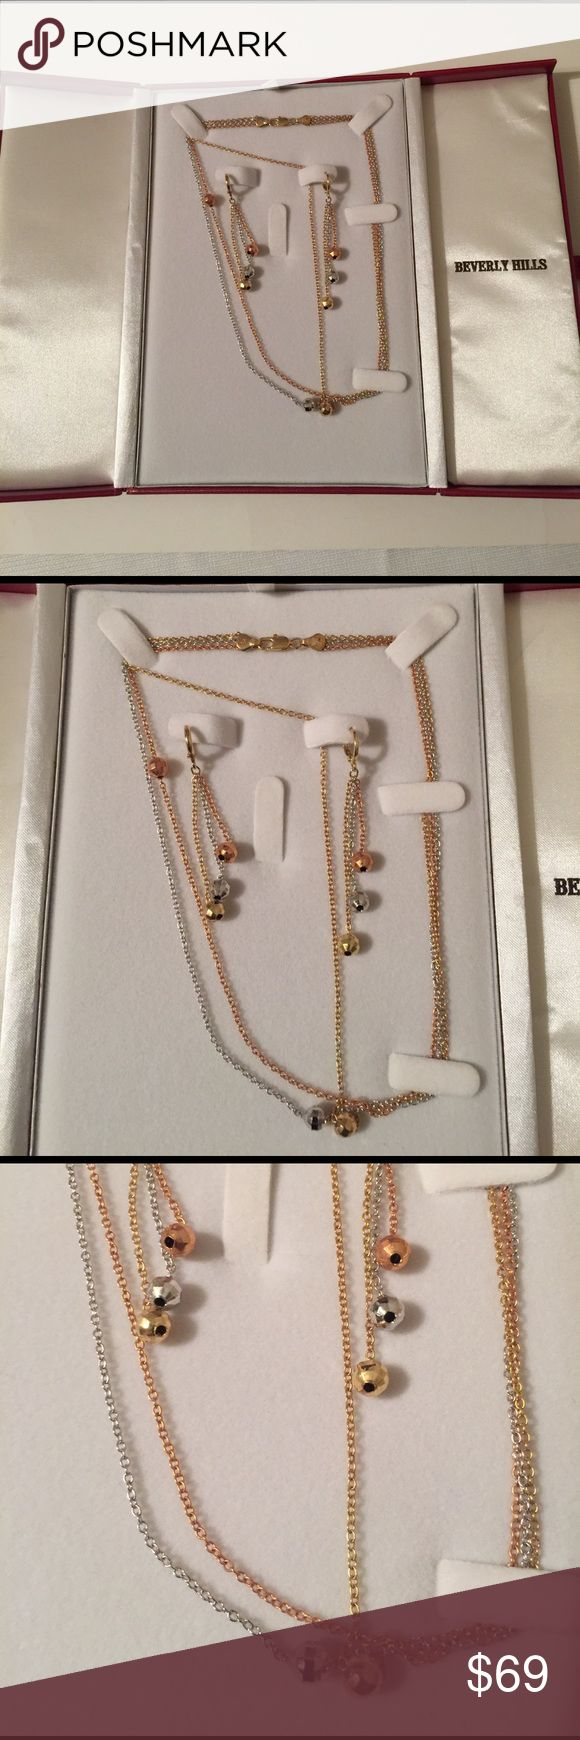 Brand-new Beverly hills necklace set earrings Brand-new Beverly heels necklace set in silver and rose gold tone chain. Necklace and long earrings. Comes in a beautiful red box. Check out my closet, we have a variety of Victoria Secret, Bath and Body Works, handbags 👜 purse 👛 Aerosoles, shoes 👠fashion jewelry, women's clothing, Beauty products, home 🏡 decors & more...  Ships via USPS. Don't forget to bundle, you save big! Always a FREE GIFT 🎁 with every purchase!!! Thank you & Happy…